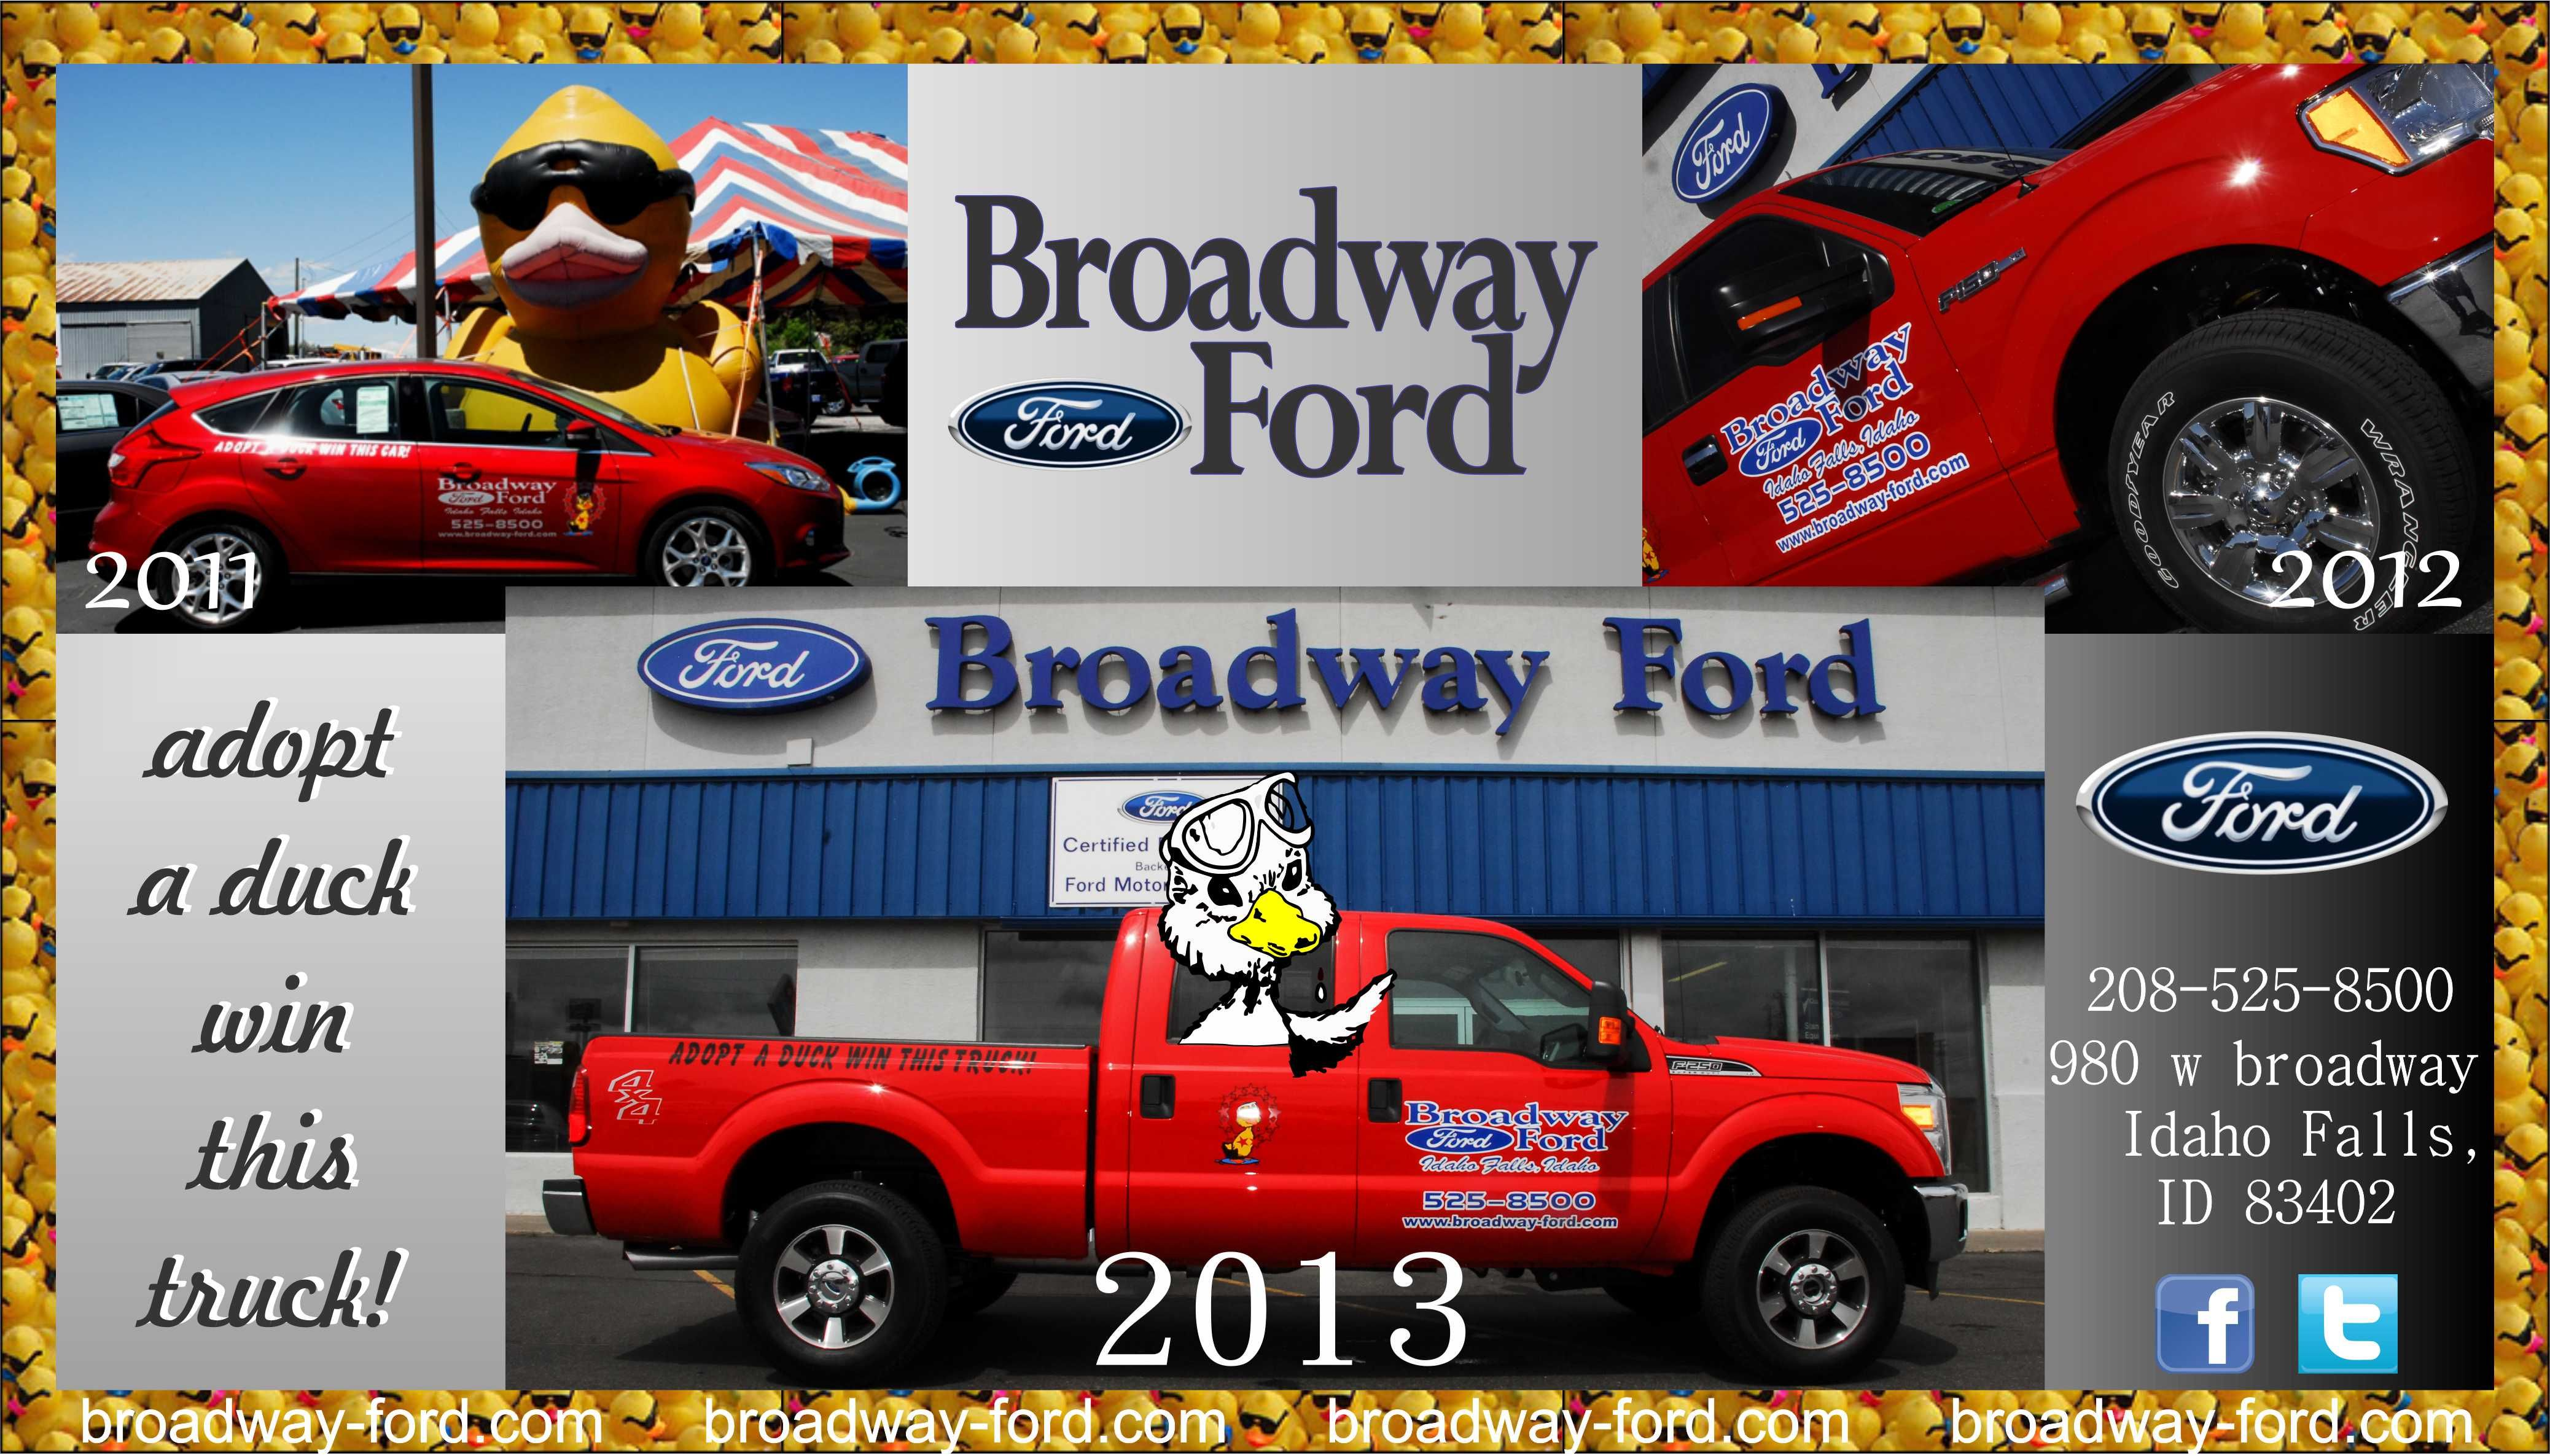 Broadway Ford Idaho Falls >> 10 Best Broadway Ford In The Community Images Broadway Community